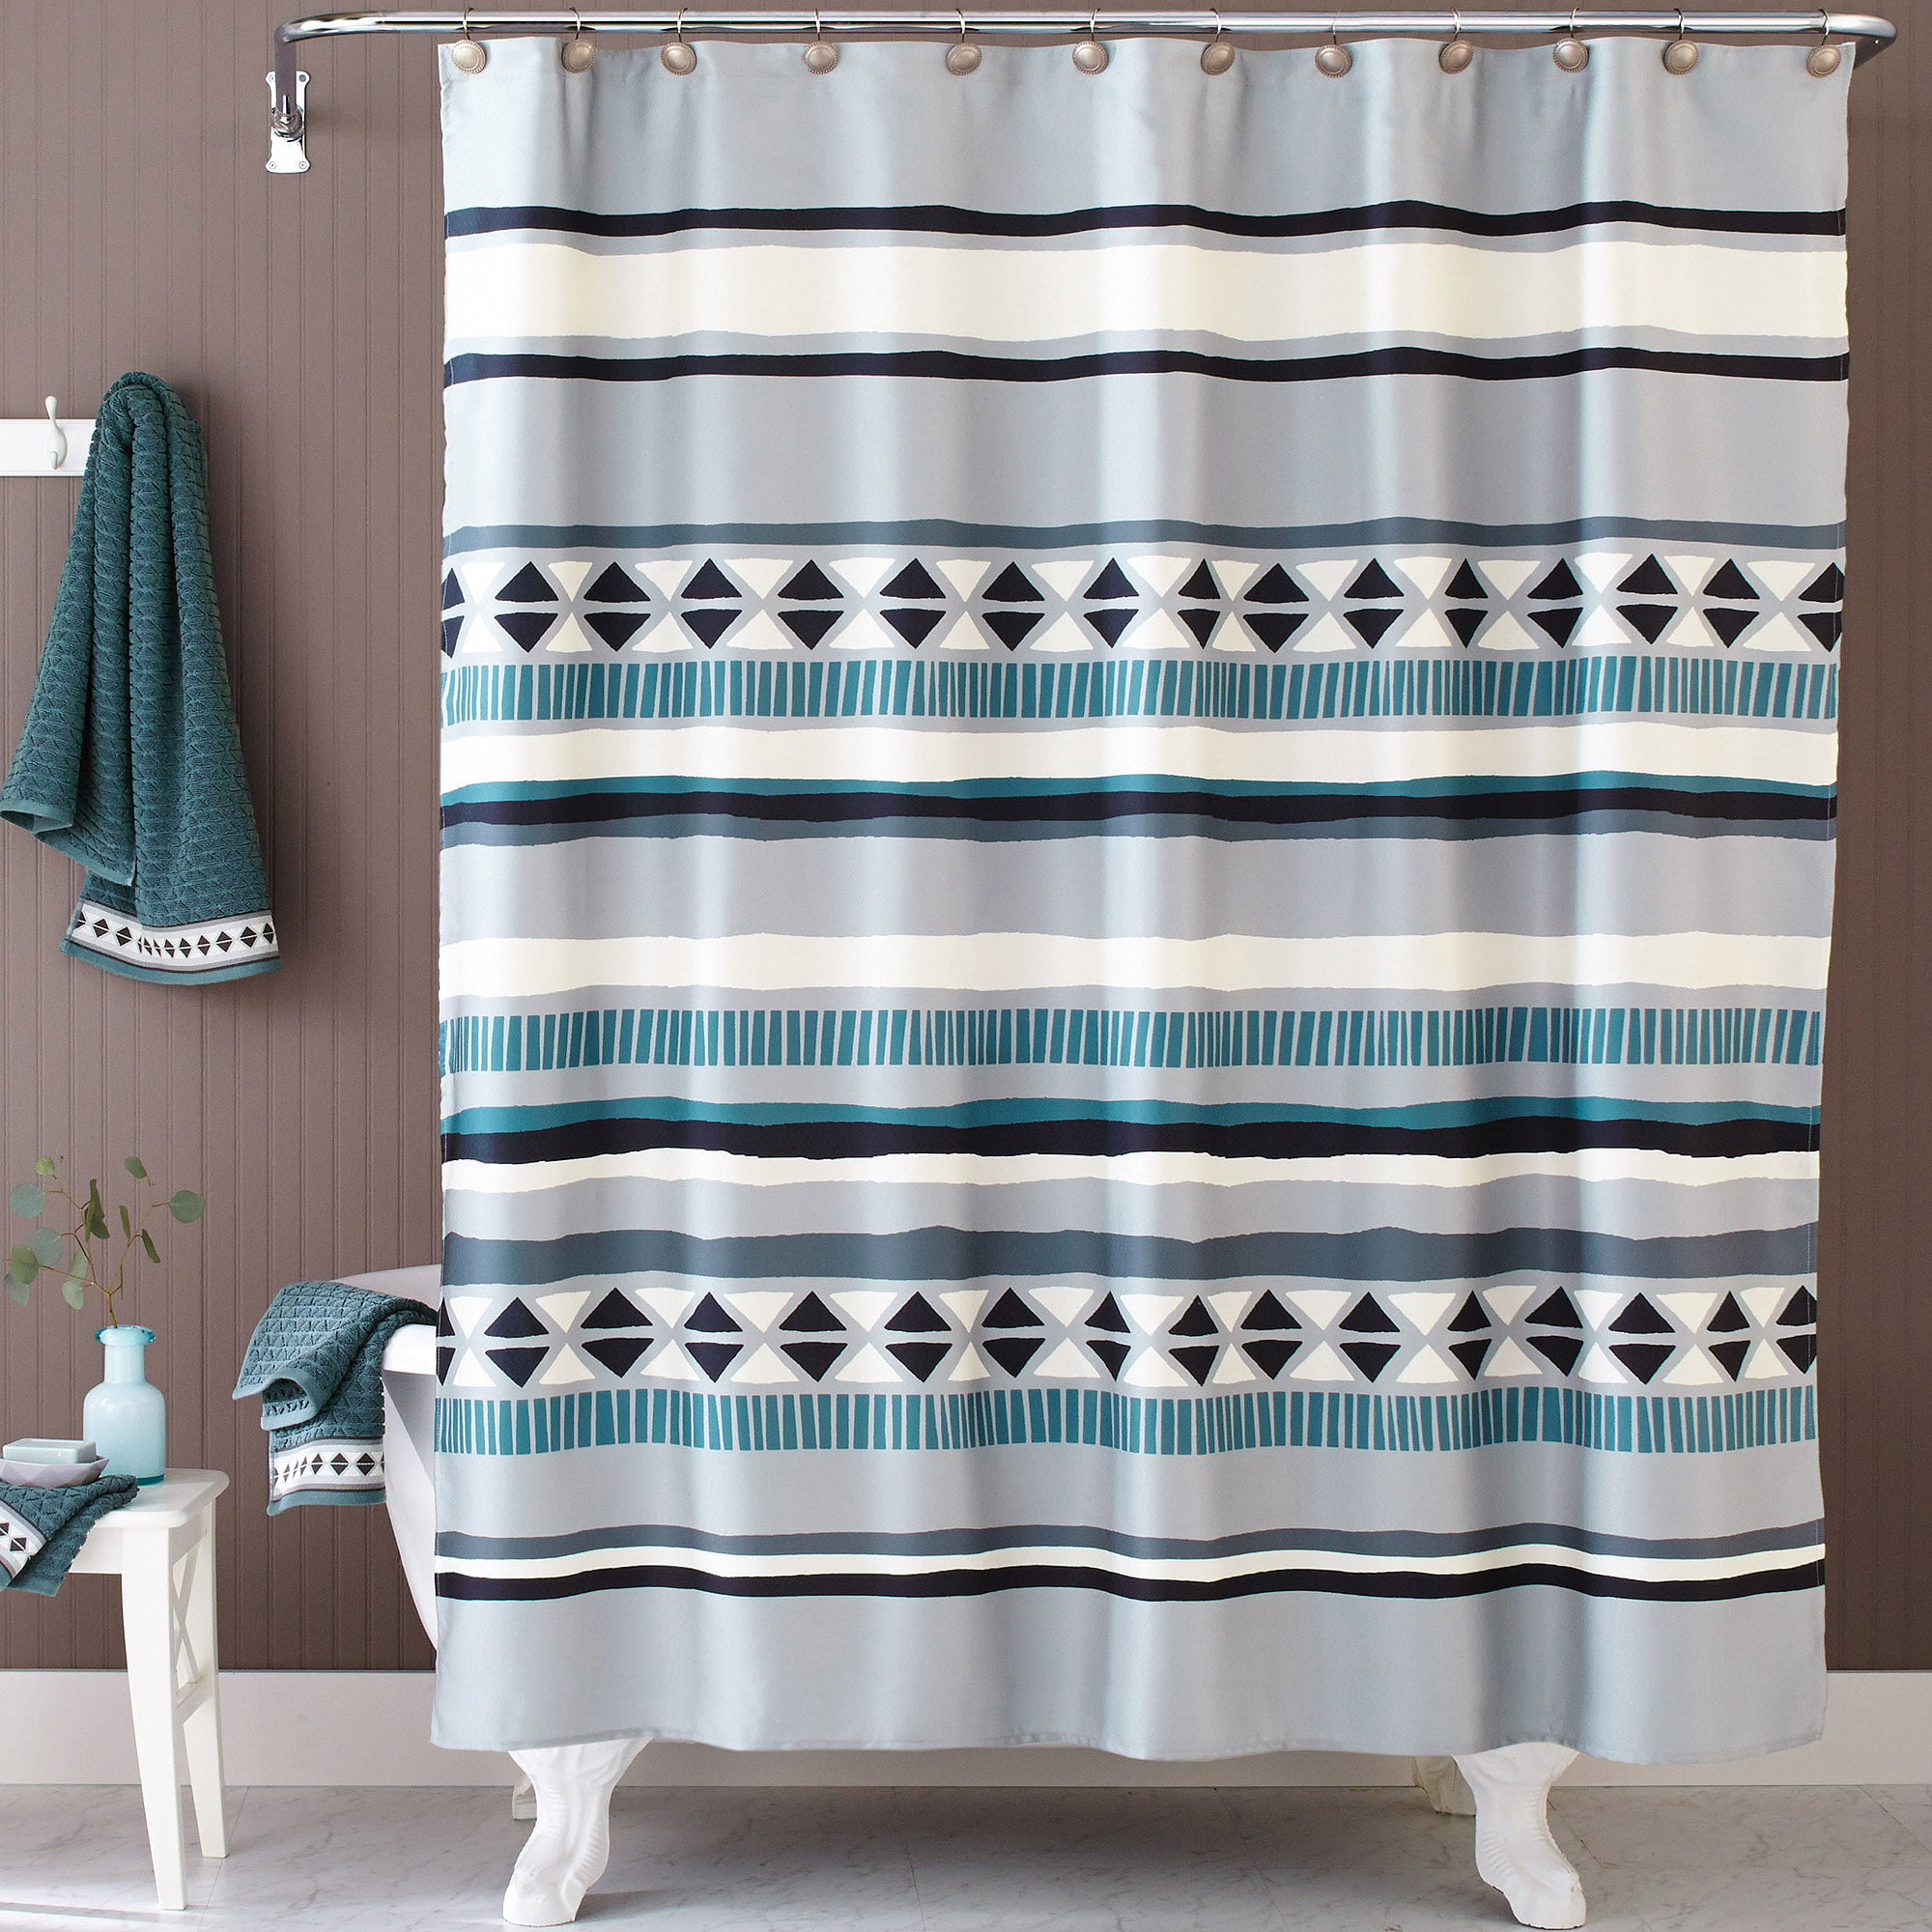 teal striped shower curtain.  Better Homes and Gardens Graphic Stripe Shower Curtain Walmart com